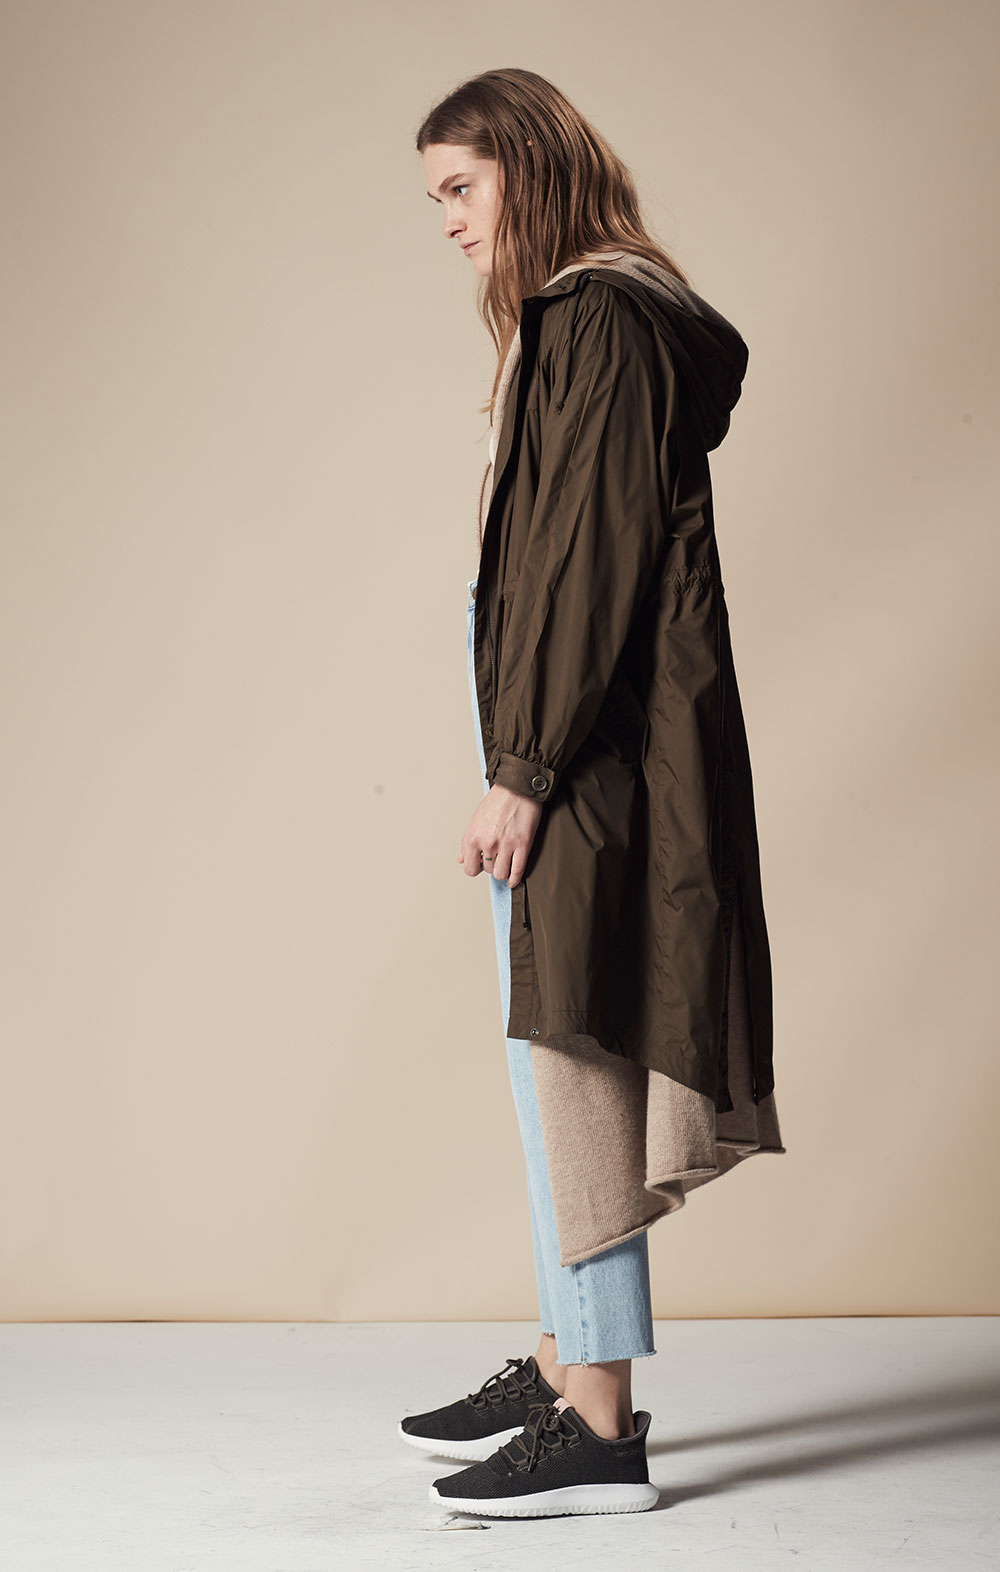 Water Repellent Hooded Anorak FBJ048-OLV Cashmere-blend Hooded Cardigan FBK090-OAT